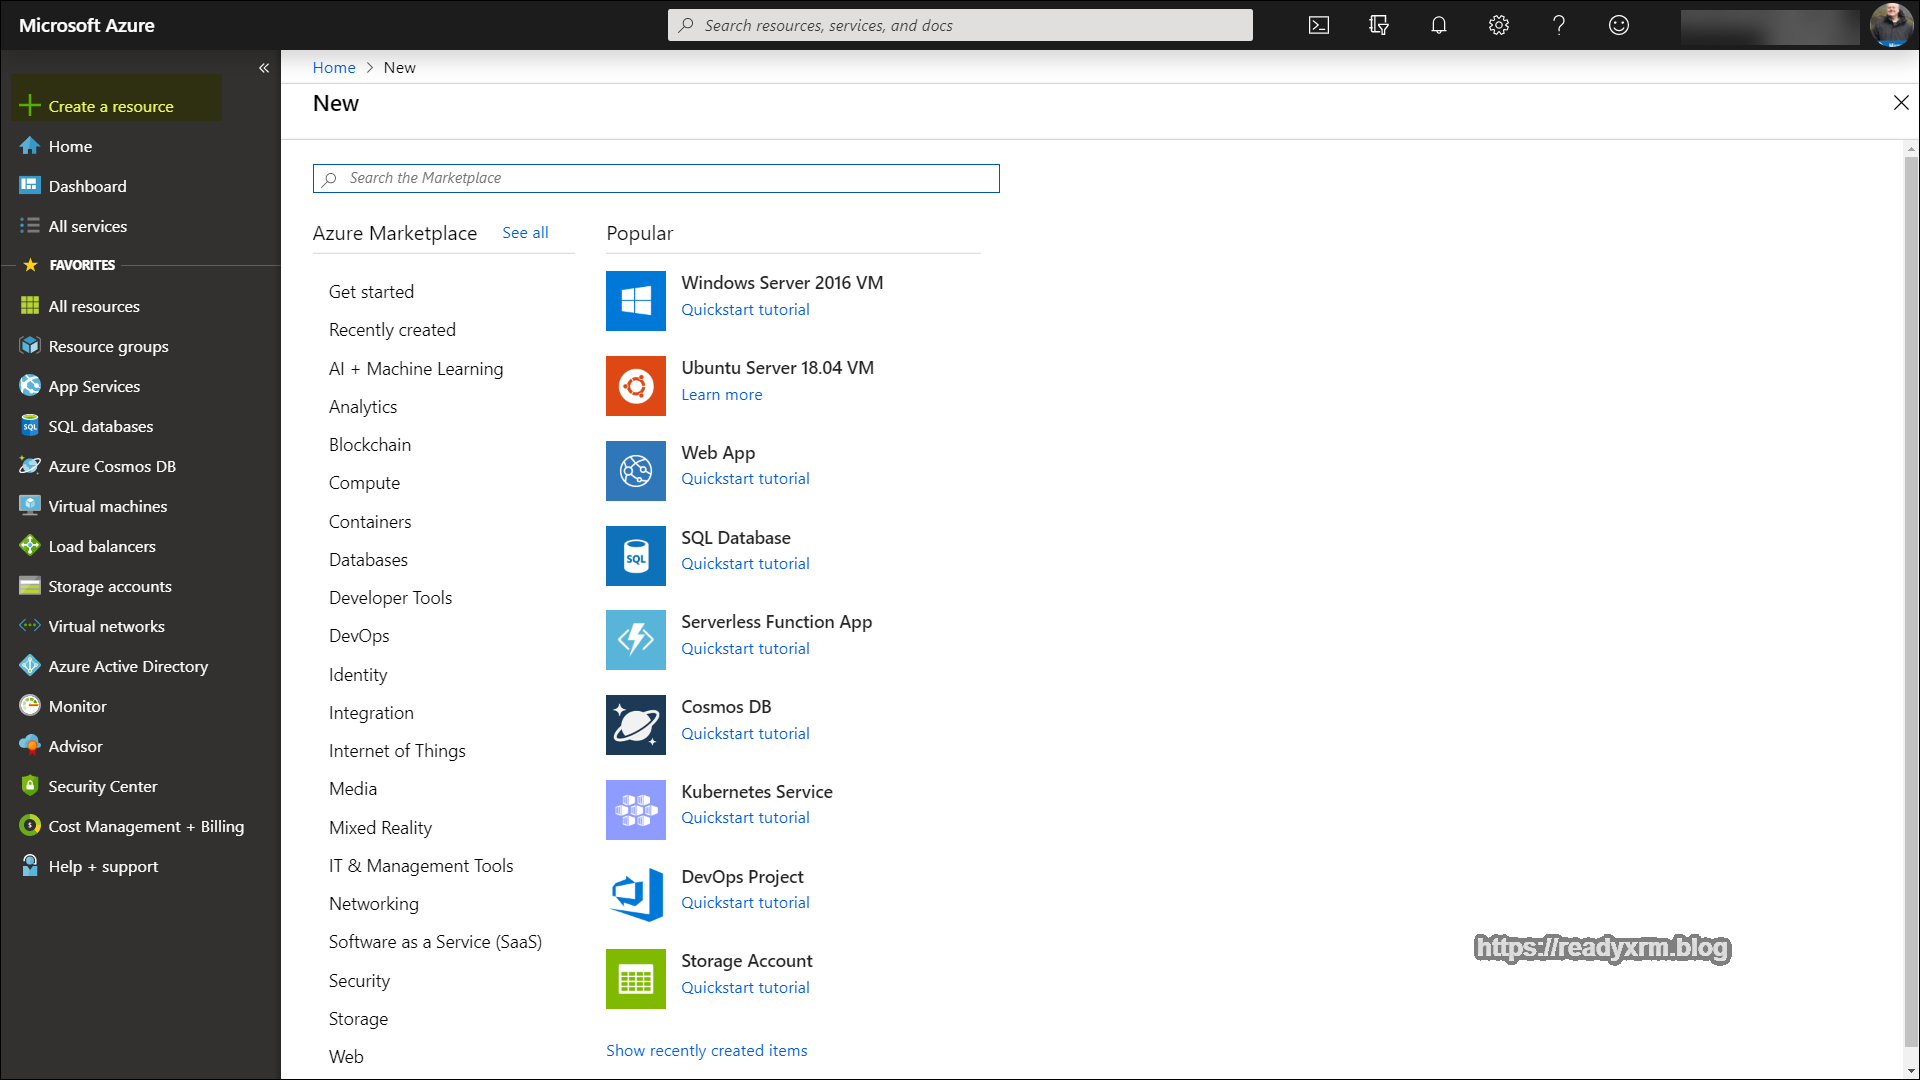 Configure Azure AD B2C for PowerApps Portals – ReadyXRM